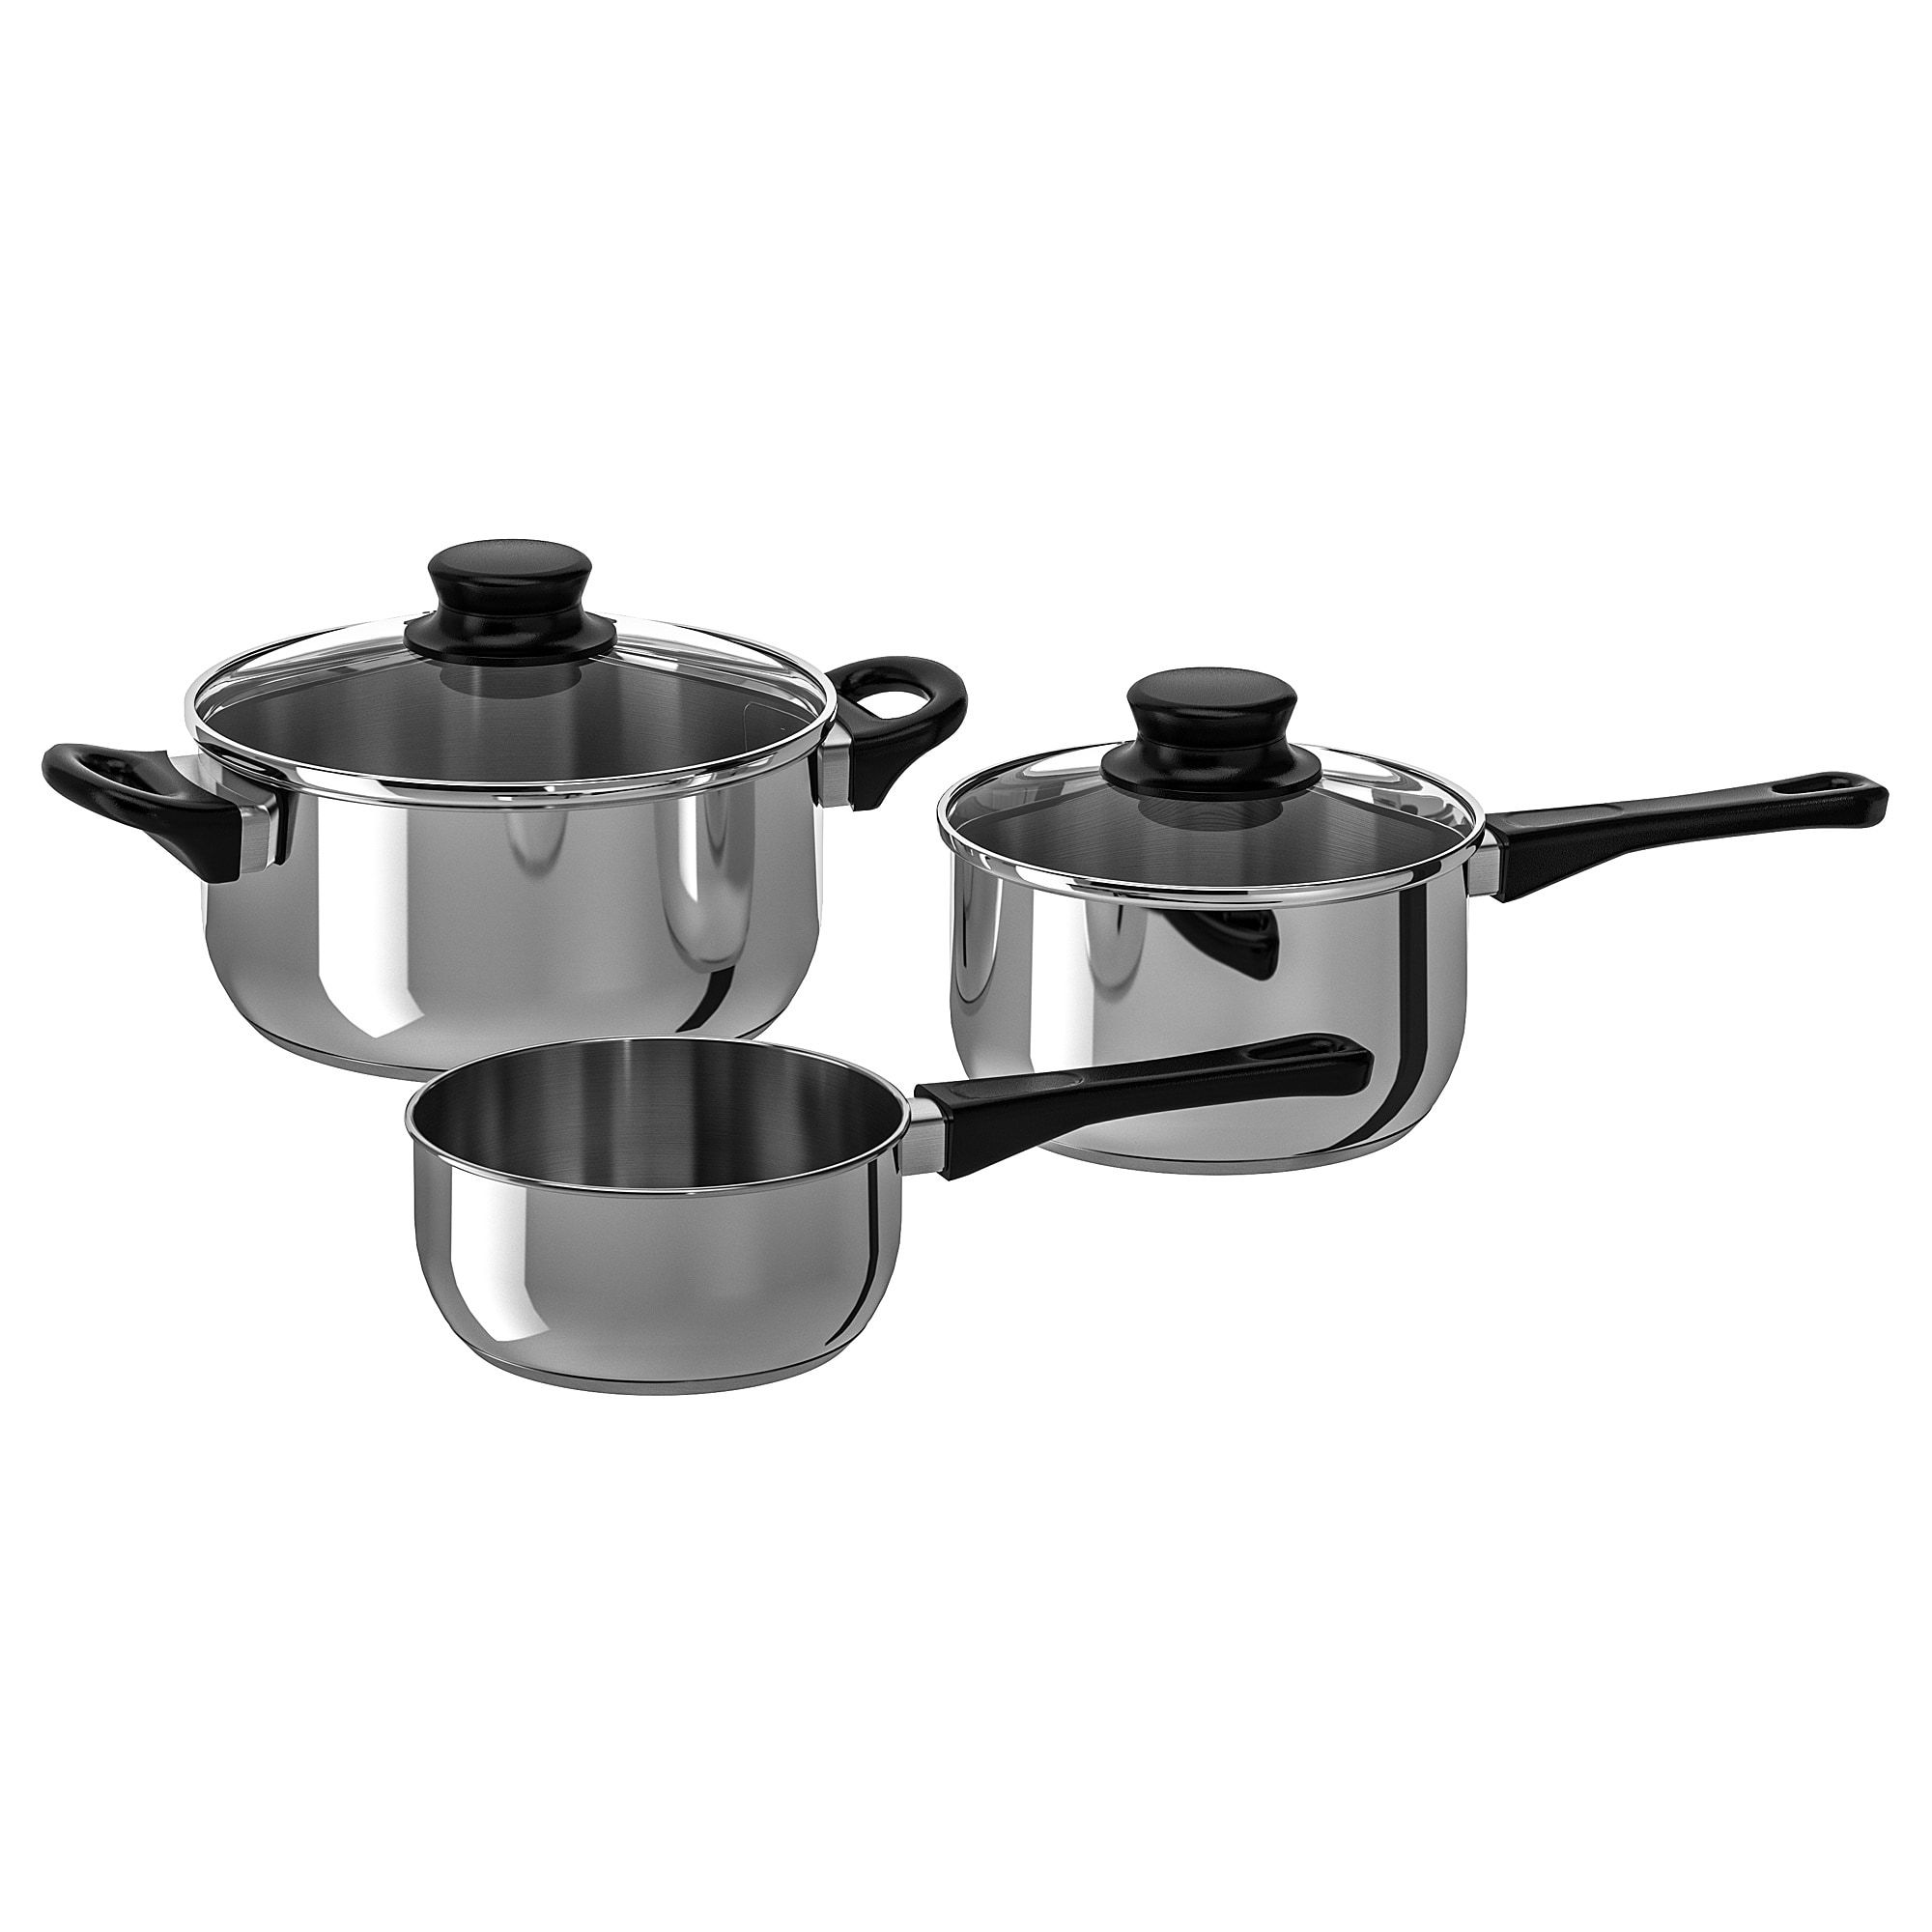 Annons 5 Piece Cookware Set Glass Stainless Steel Ikea Cookware Set Induction Cookware Cookware